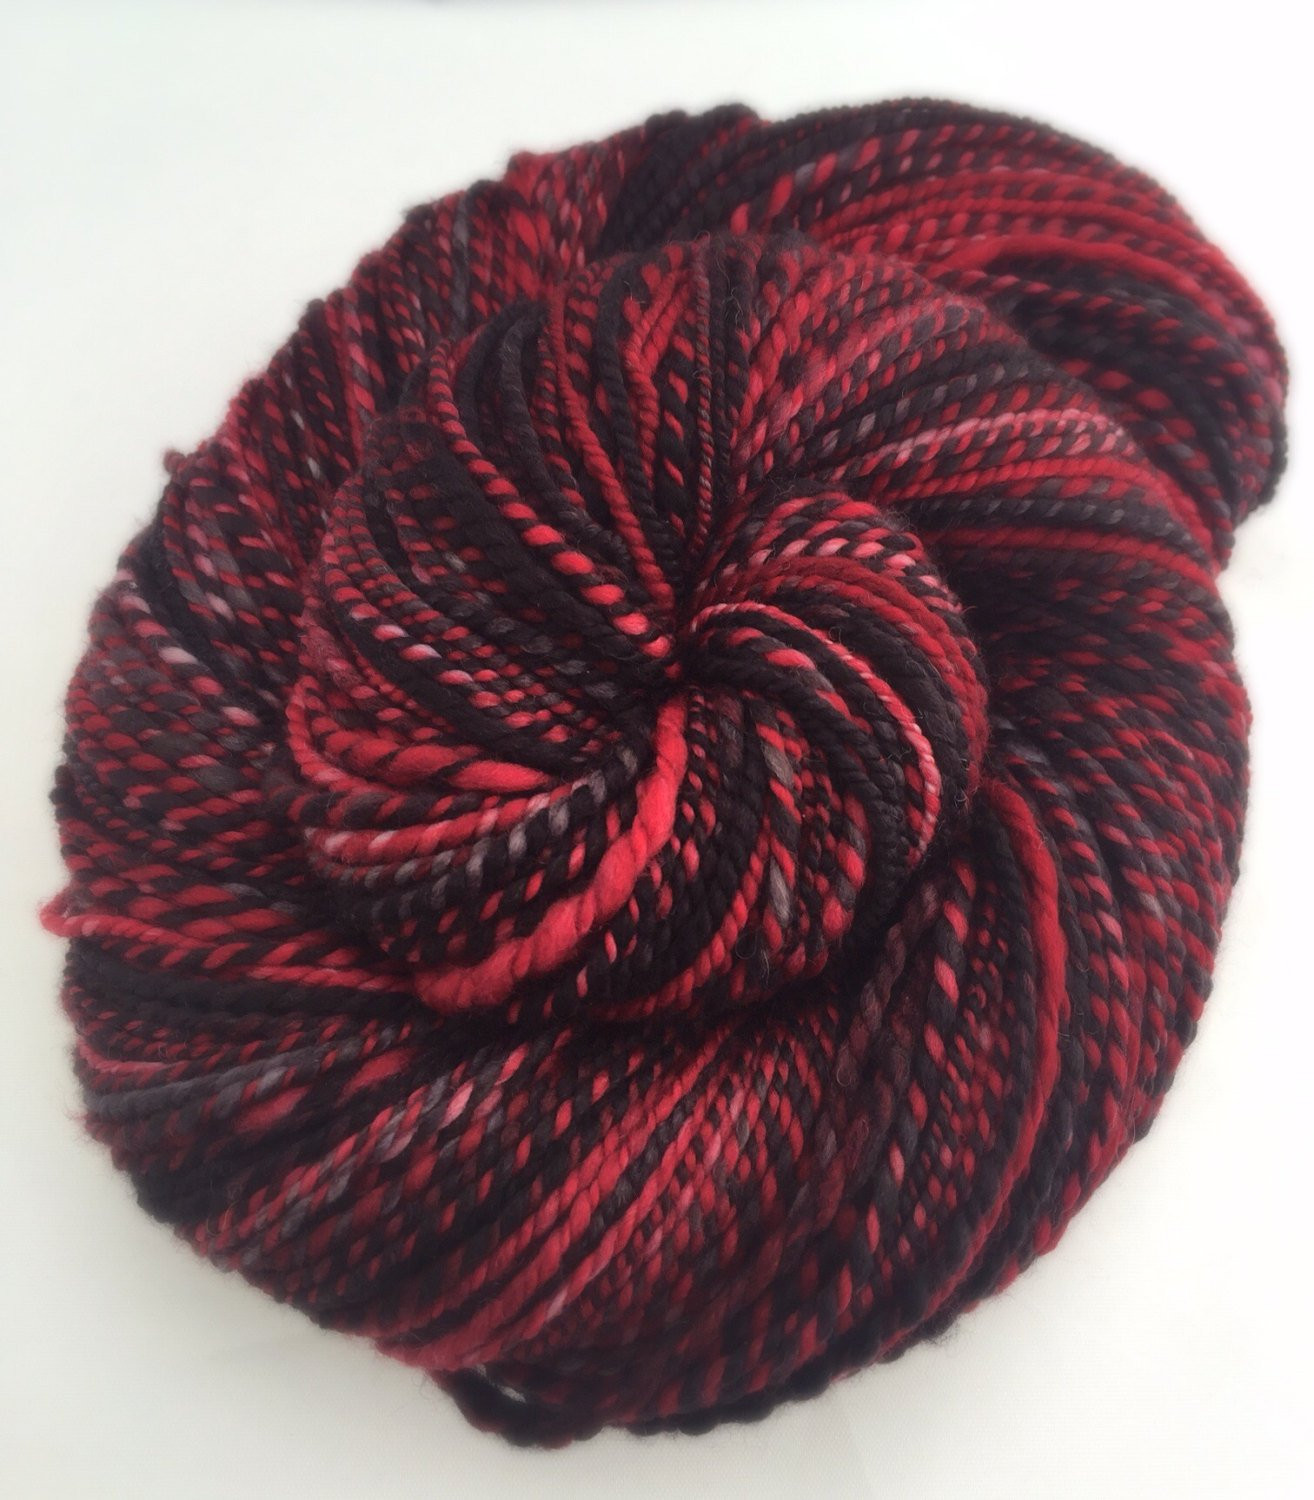 Red and Black Yarn Luxury Black and Red Handspun Yarn Worsted Of Lovely 45 Images Red and Black Yarn